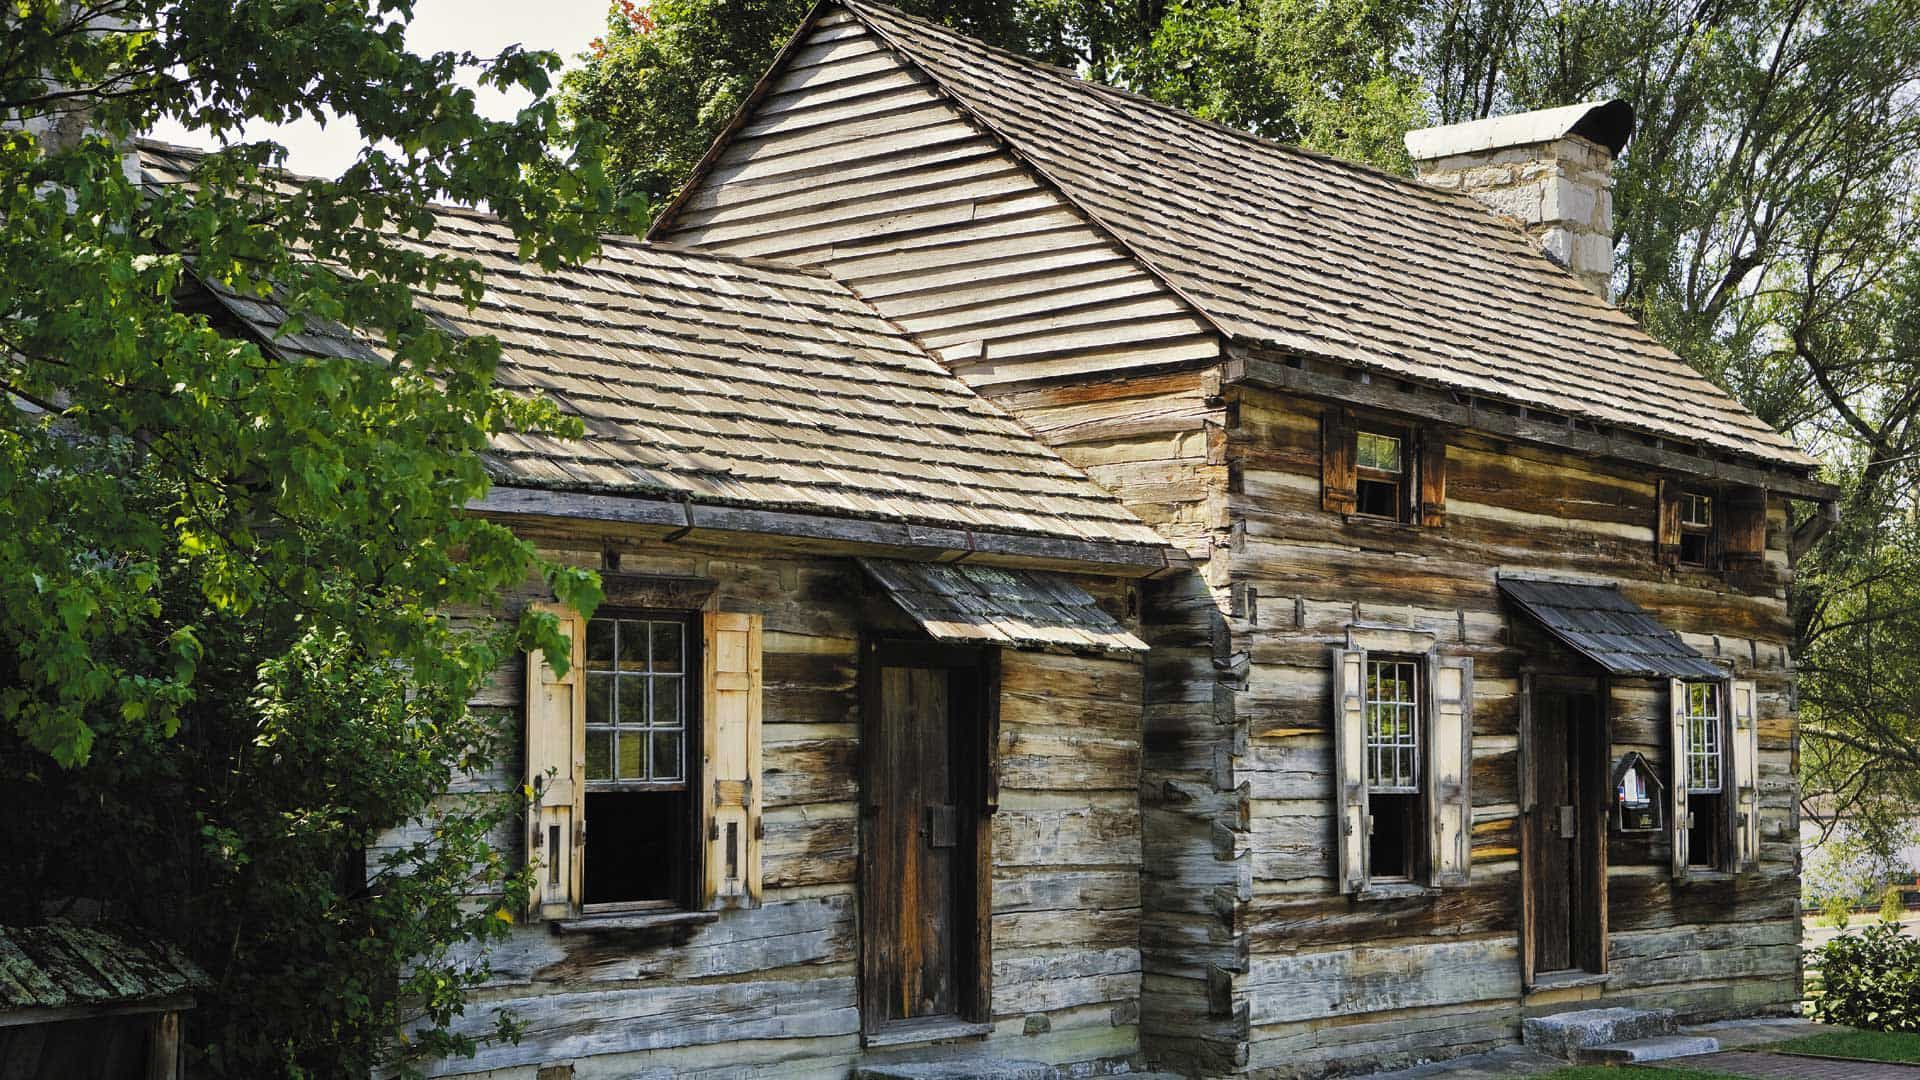 Delightful Antique Cabins And Barns The Minimalist Nyc Cabins And Cottages House In The Woods Rustic Cabin